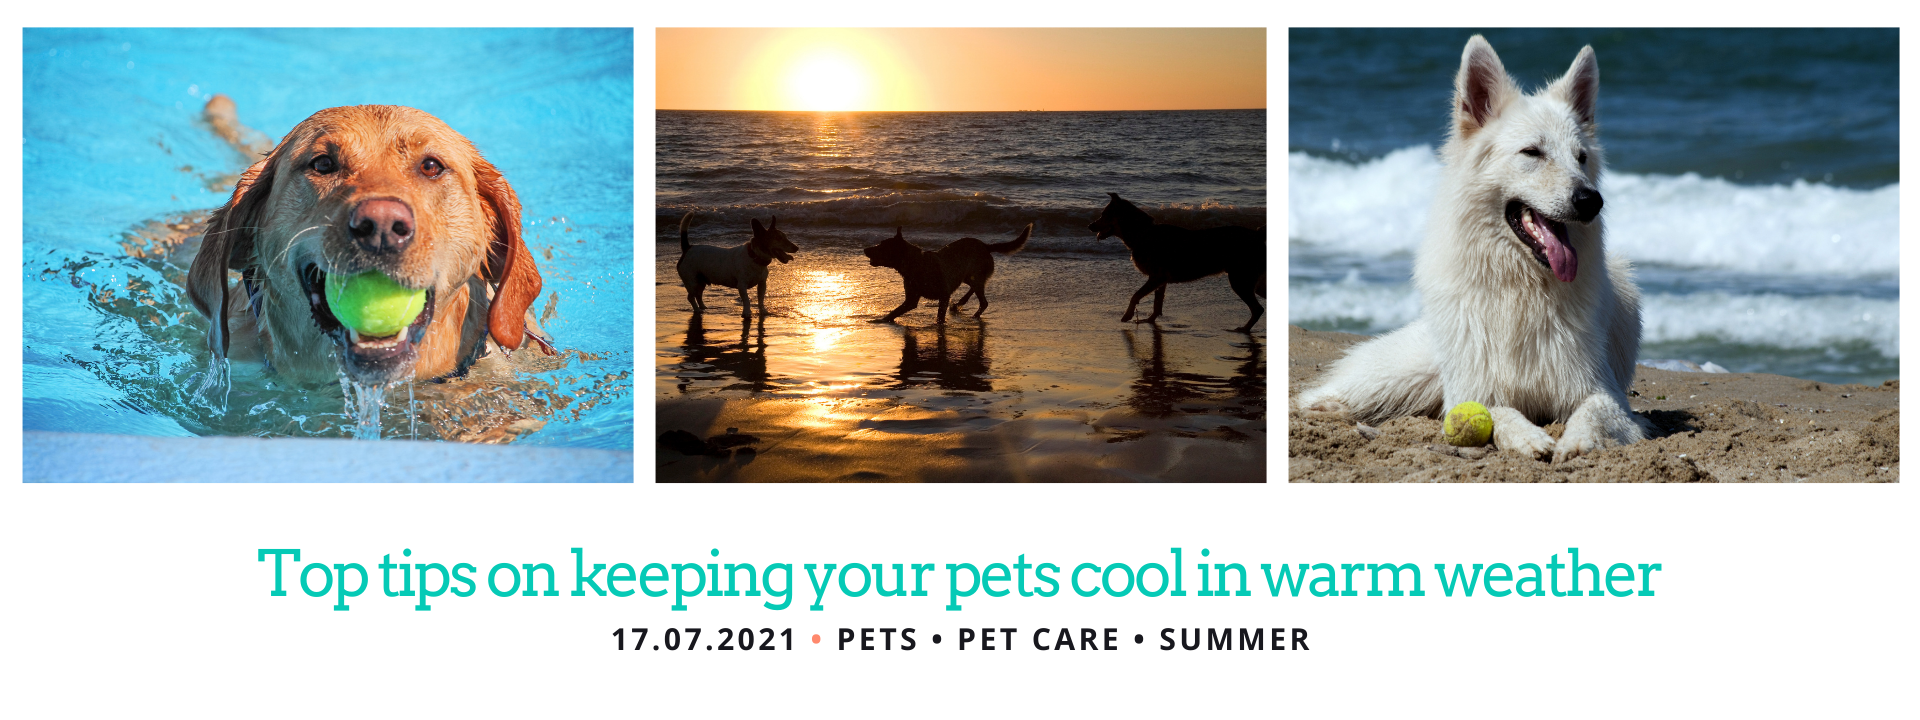 How to Keep your wet cool in warm weather